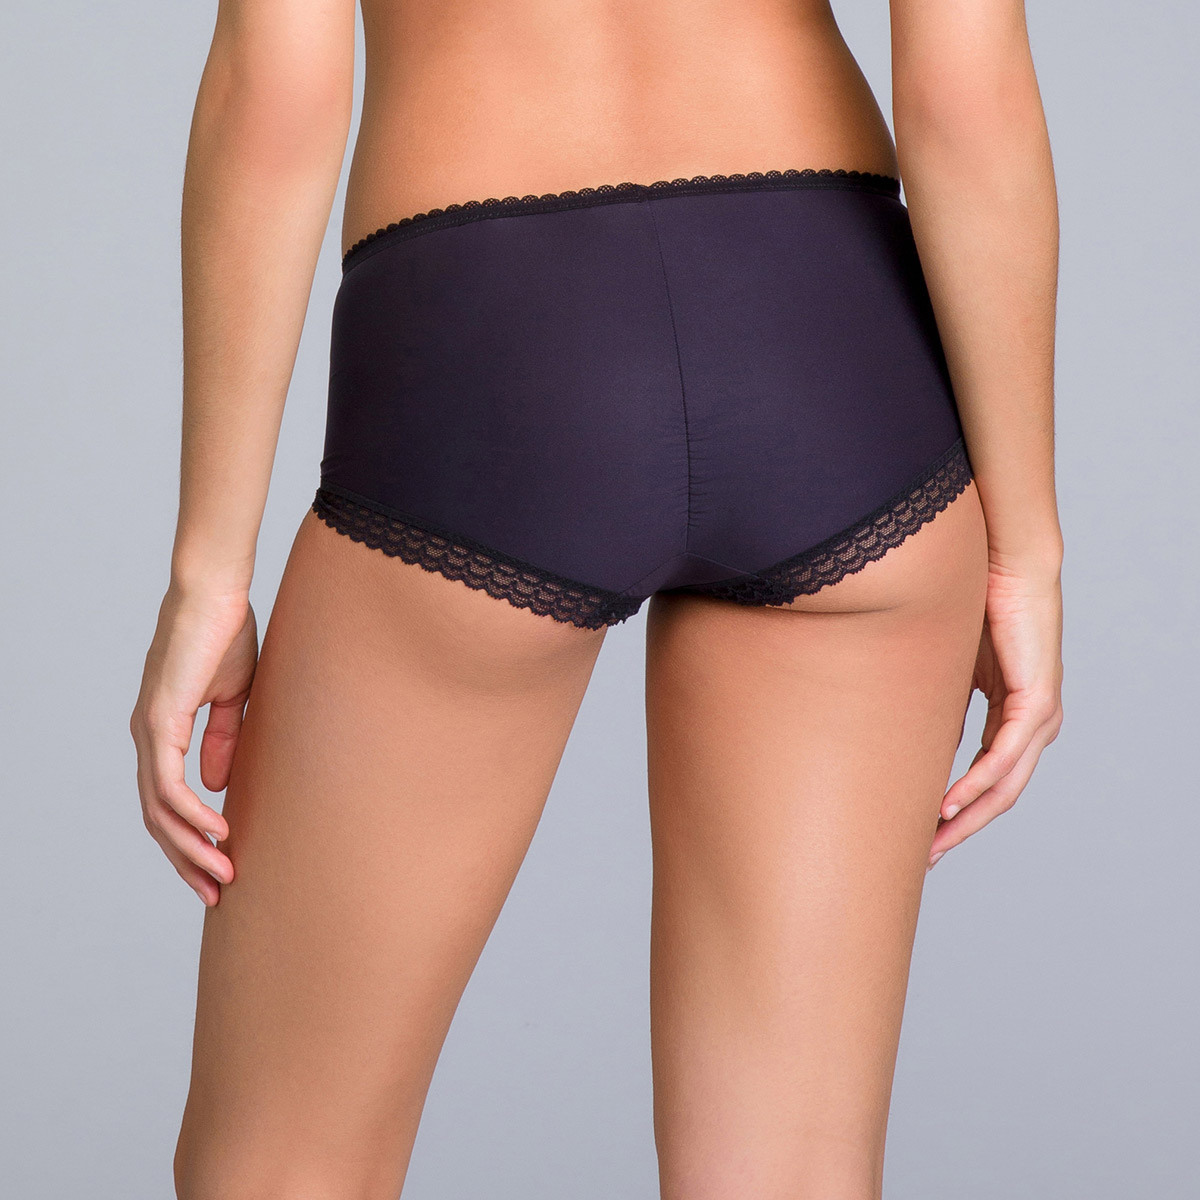 Shorts in Black Lace - Invisible Elegance, , PLAYTEX